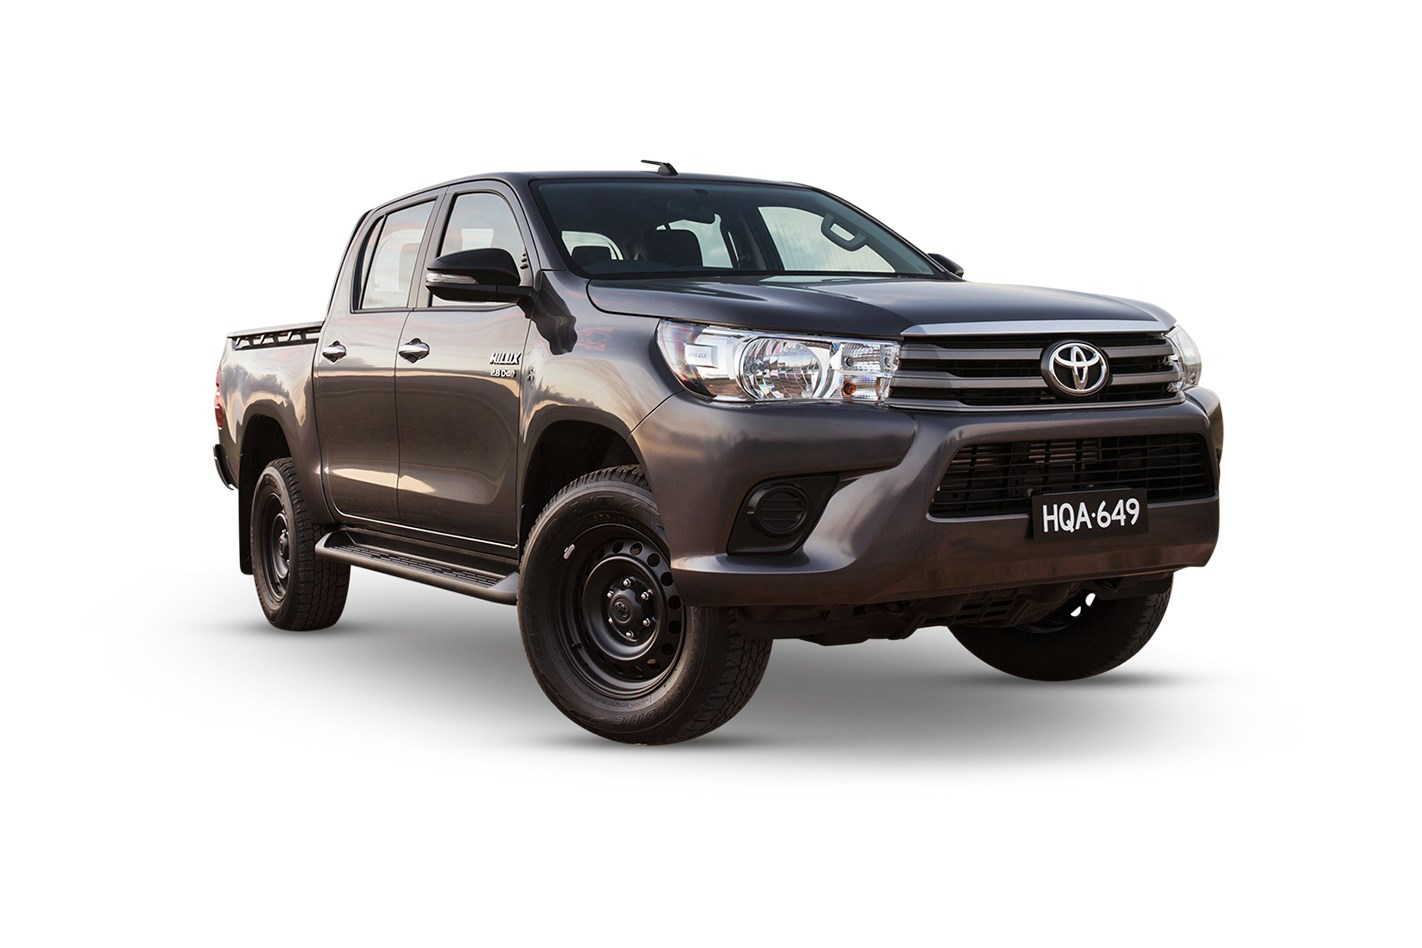 2016 toyota hilux sr 4x4 cab chassis review caradvice - 2017 Toyota Hilux Sr 4x4 Dual Cab Utility